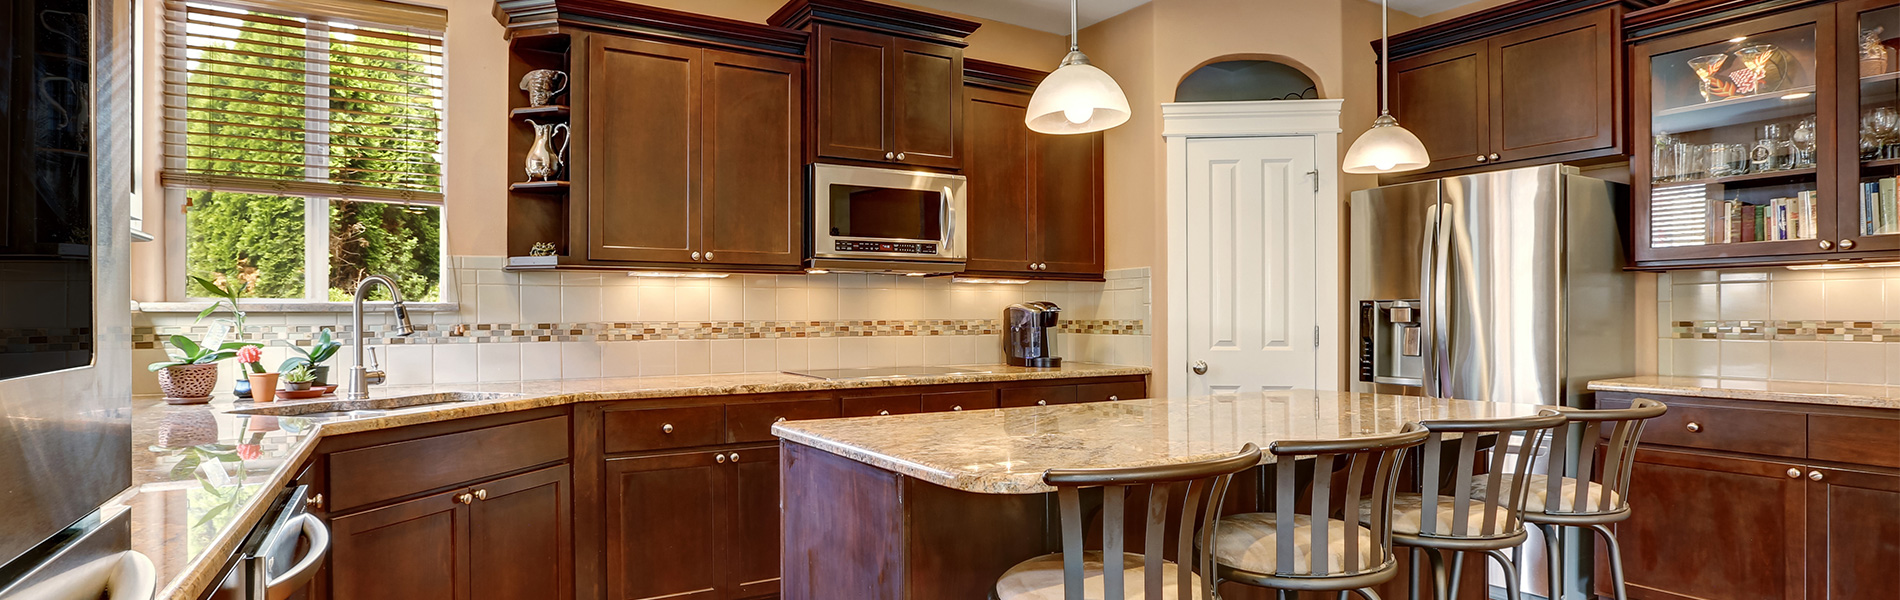 amazing kitchen remodeling contractor. Free Kitchen Design  with quote Bathroom Remodeling in Wichita Contractor